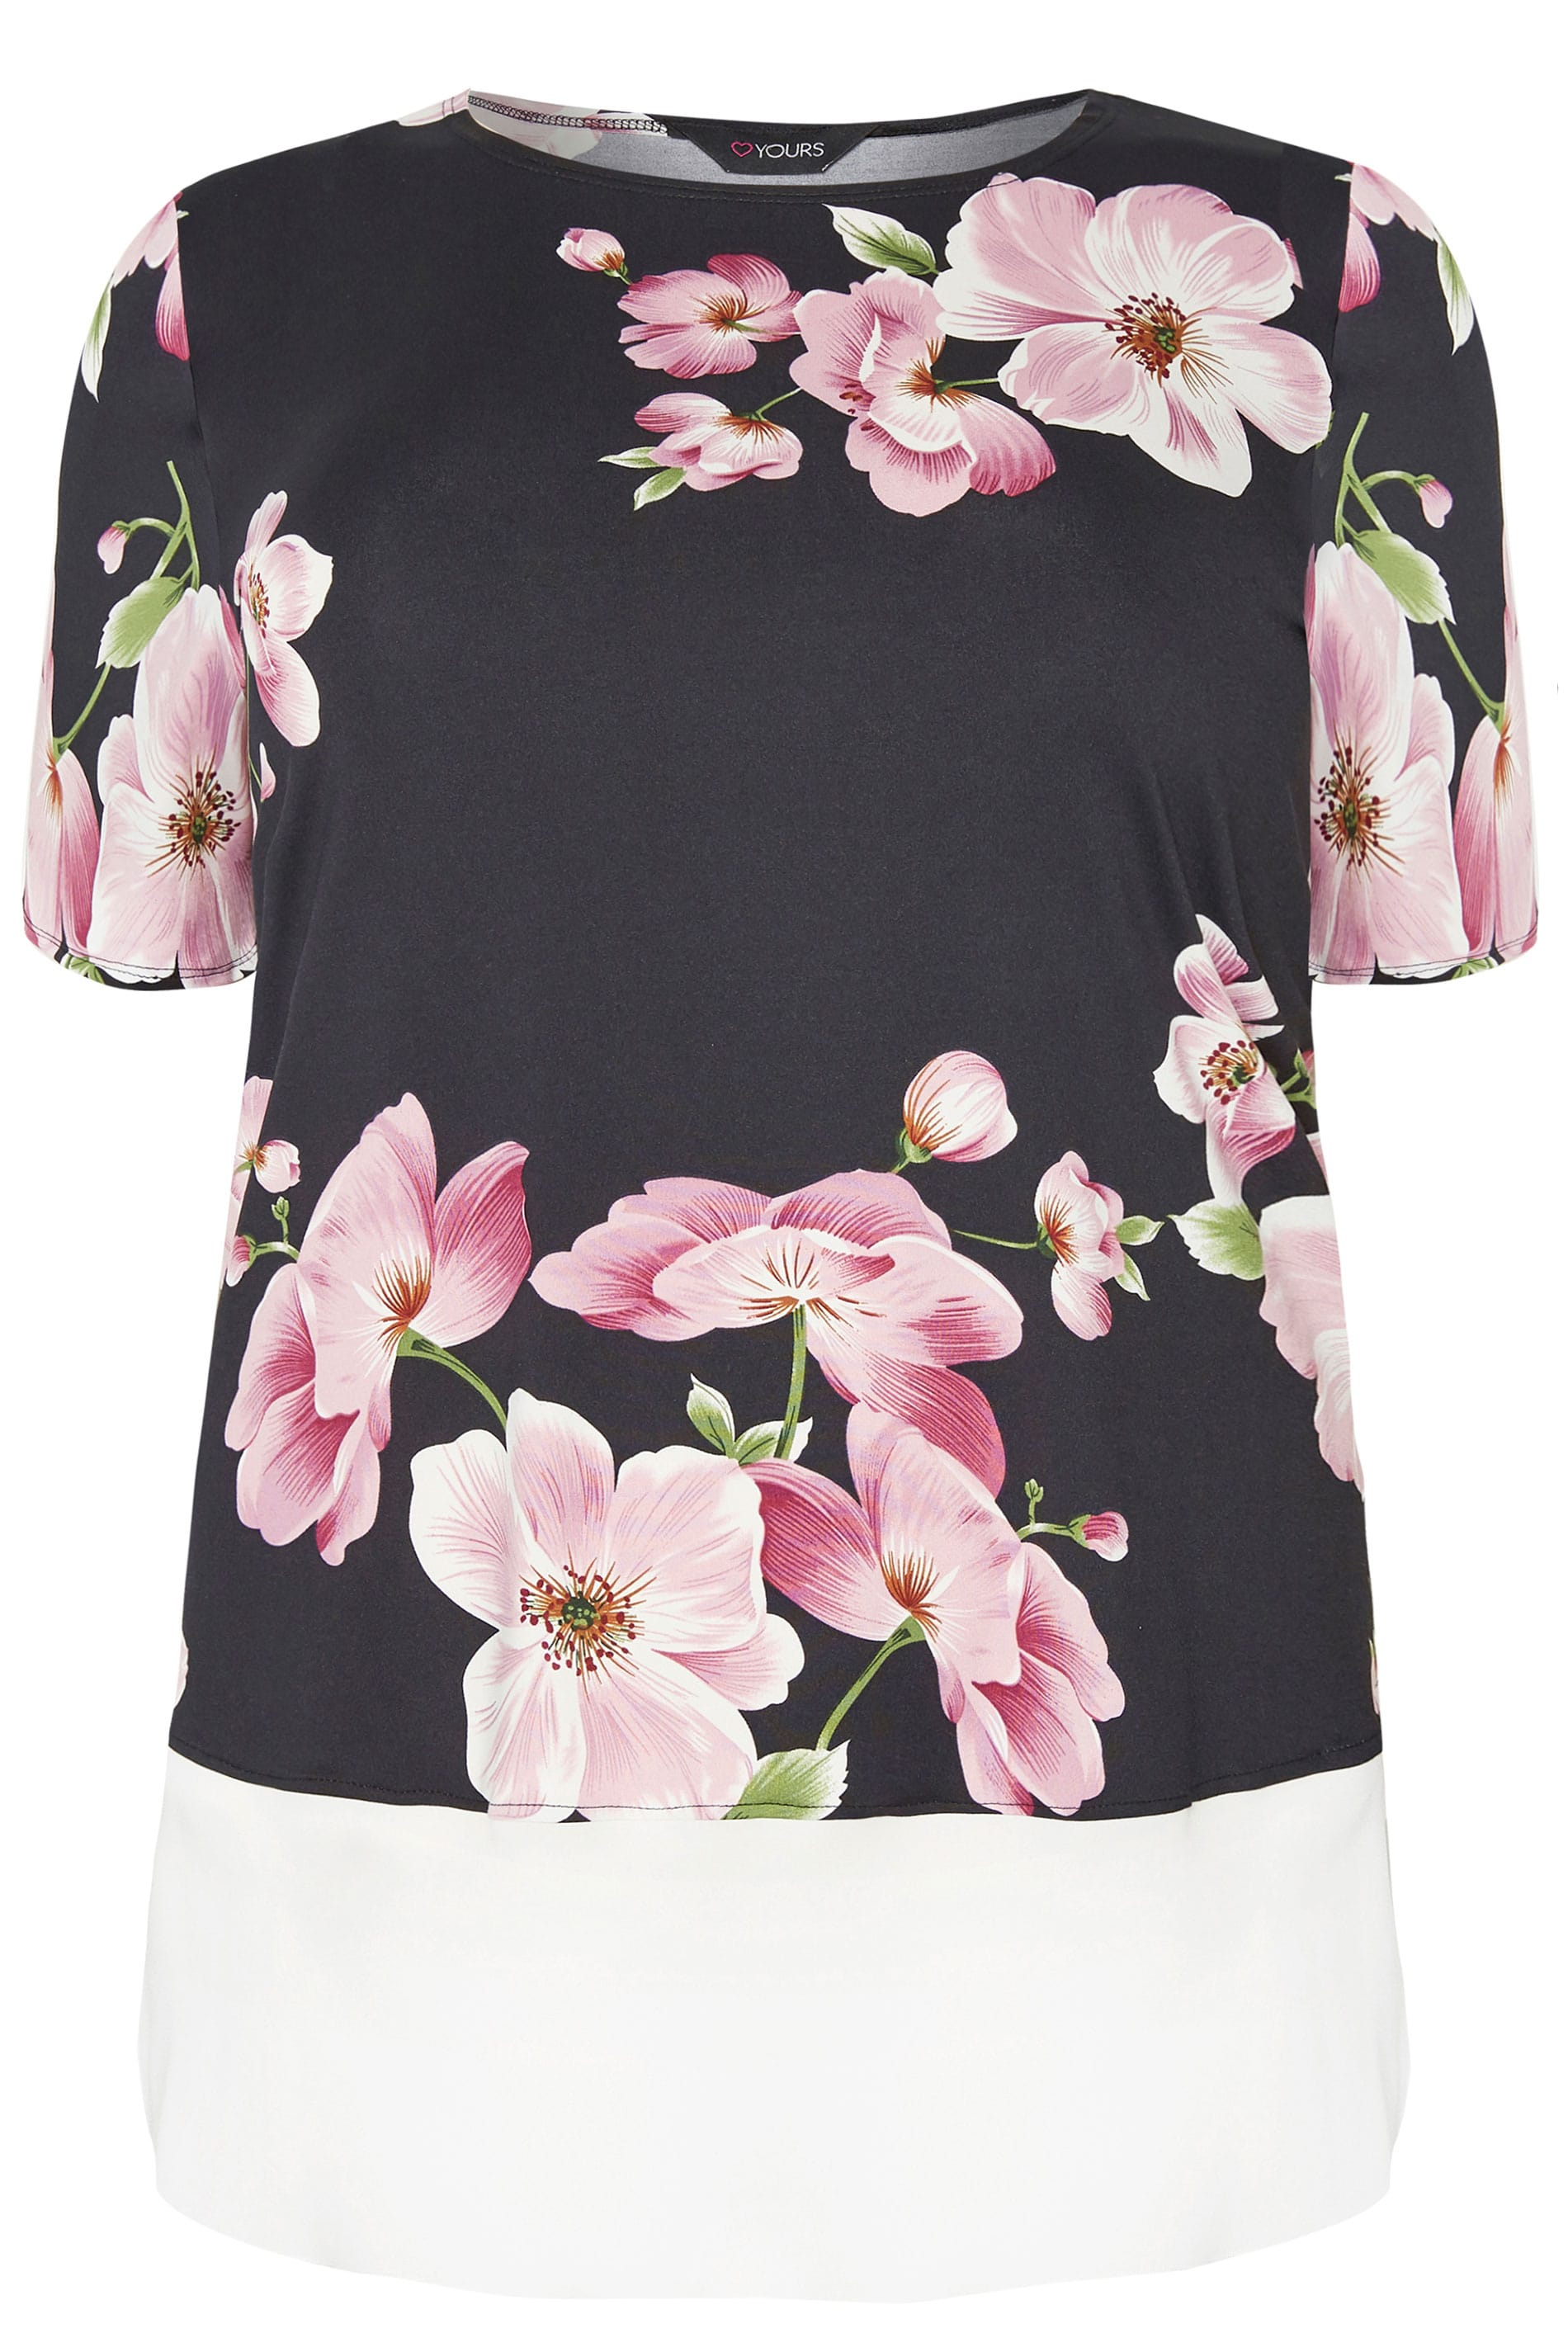 c2f1f62988 Black & Pink Floral Jersey Top | Sizes 16 to 36 | Yours Clothing